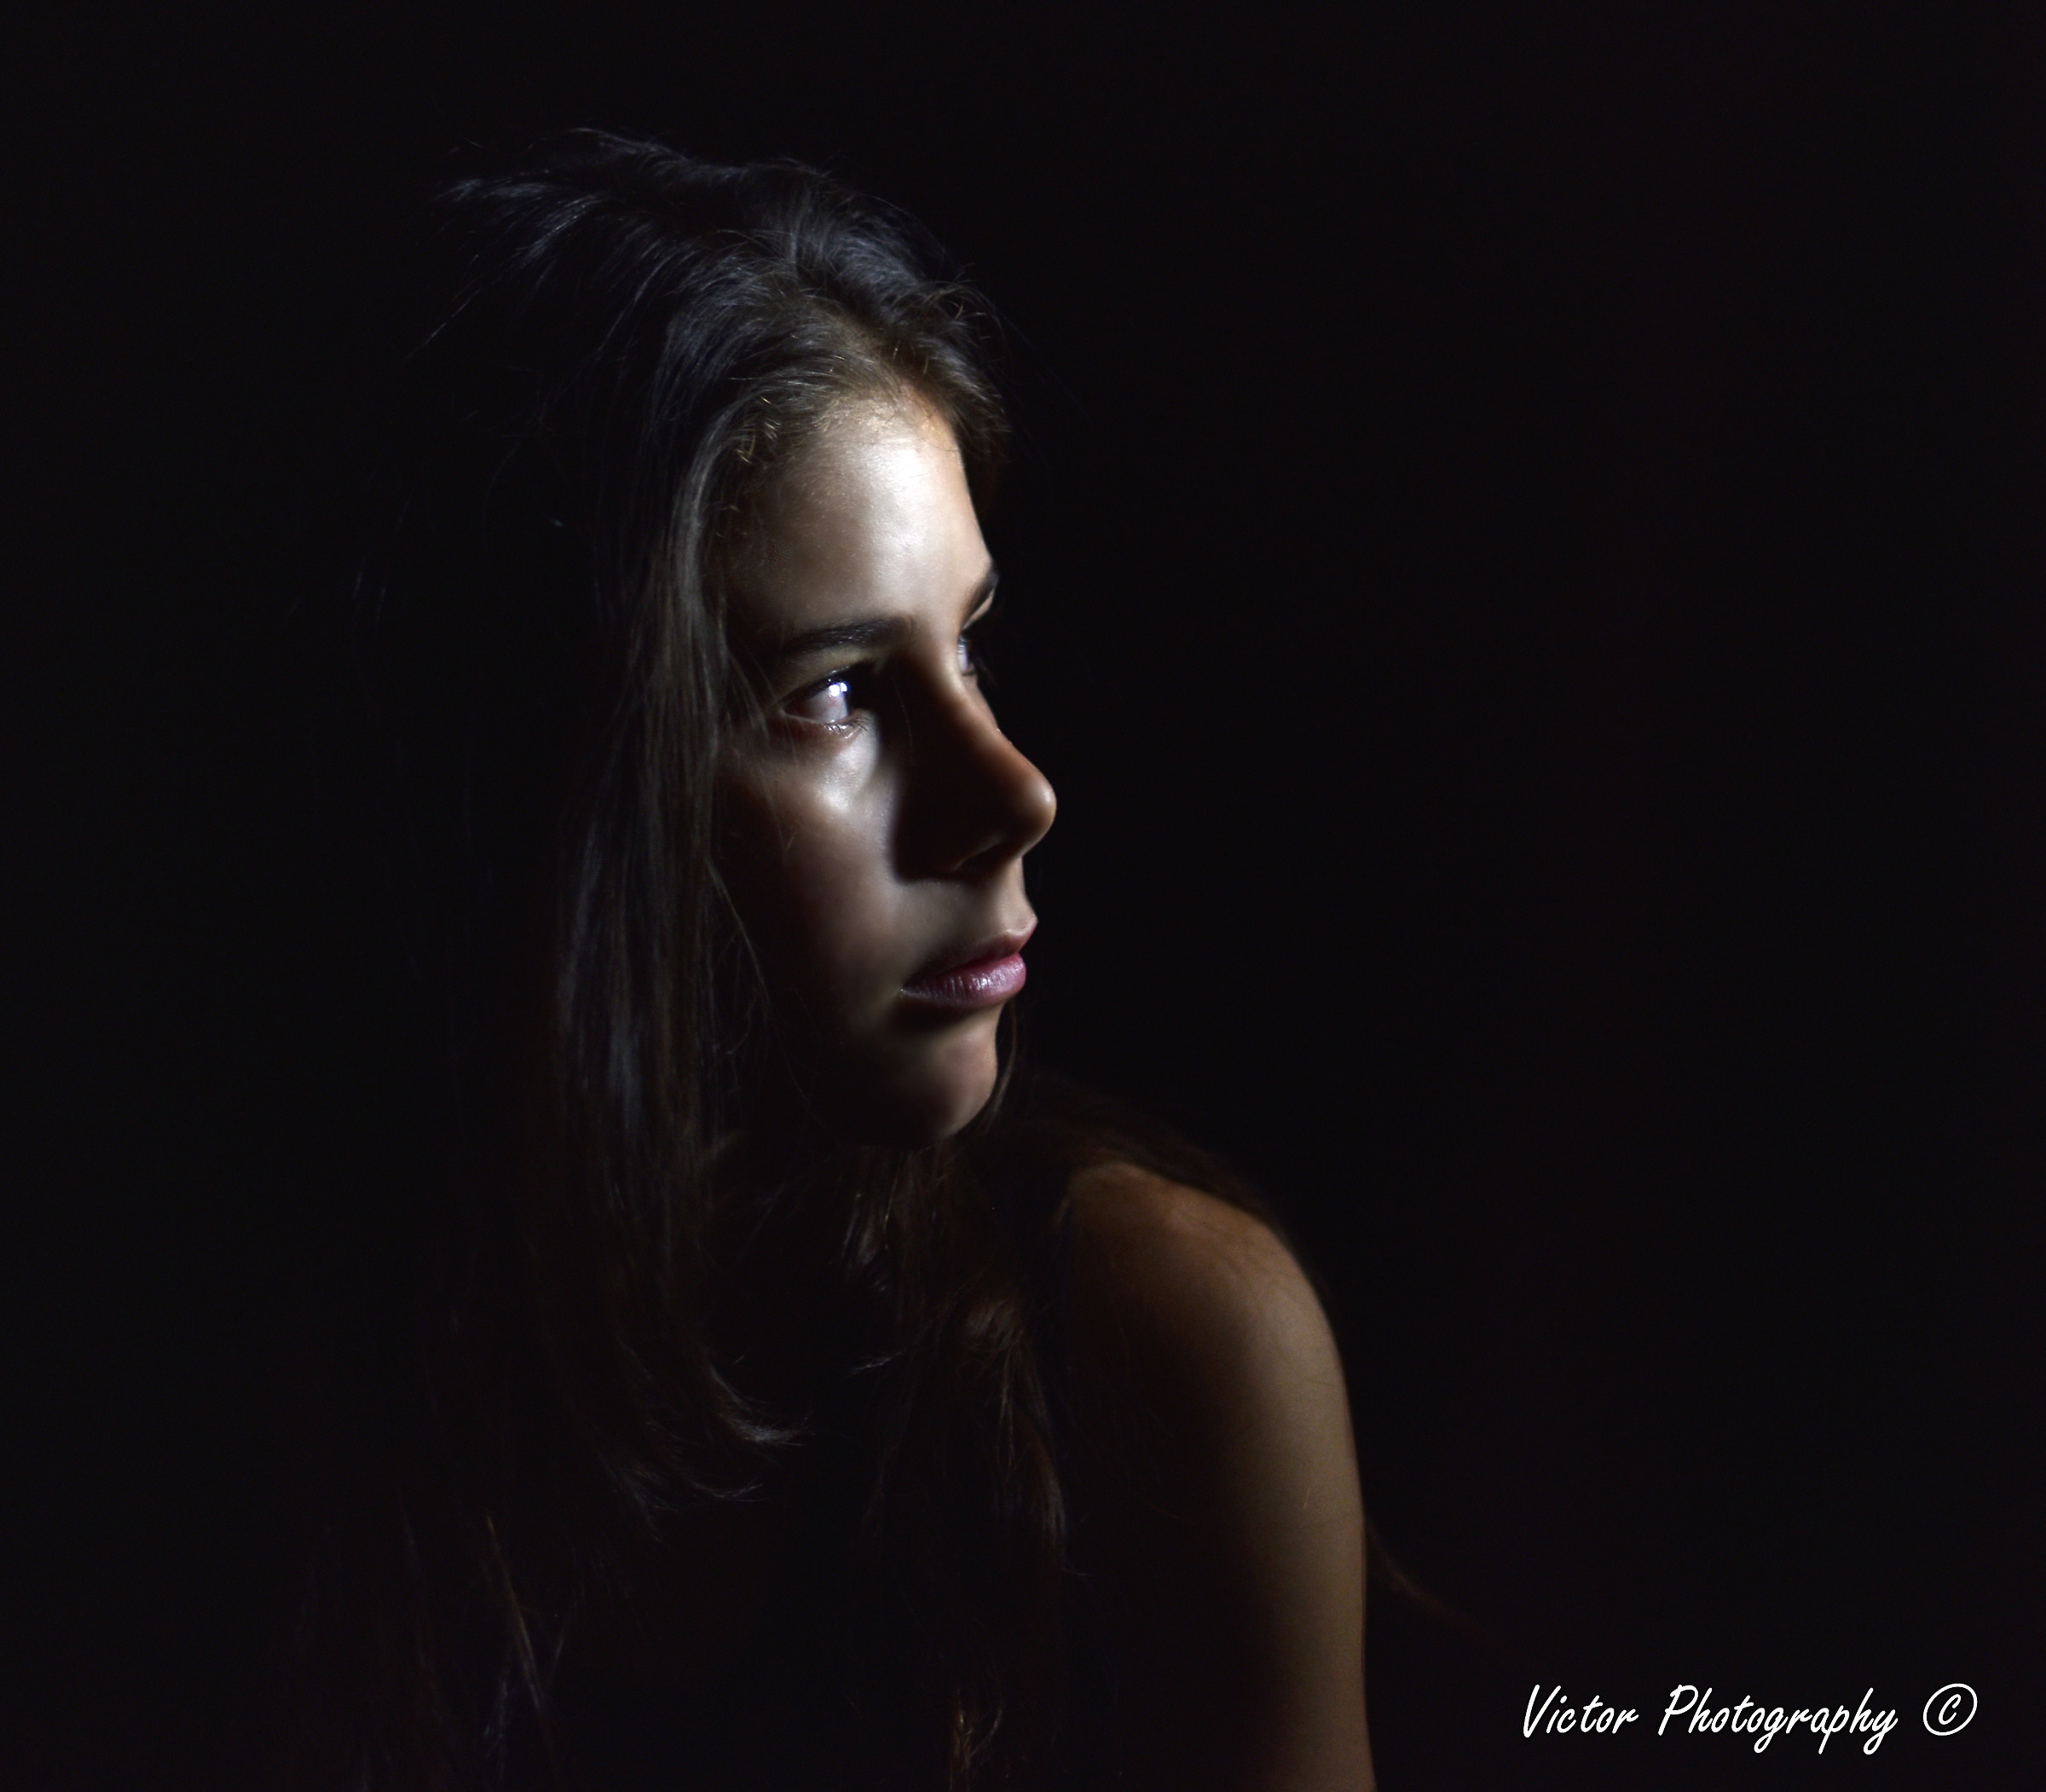 A look in the dark...